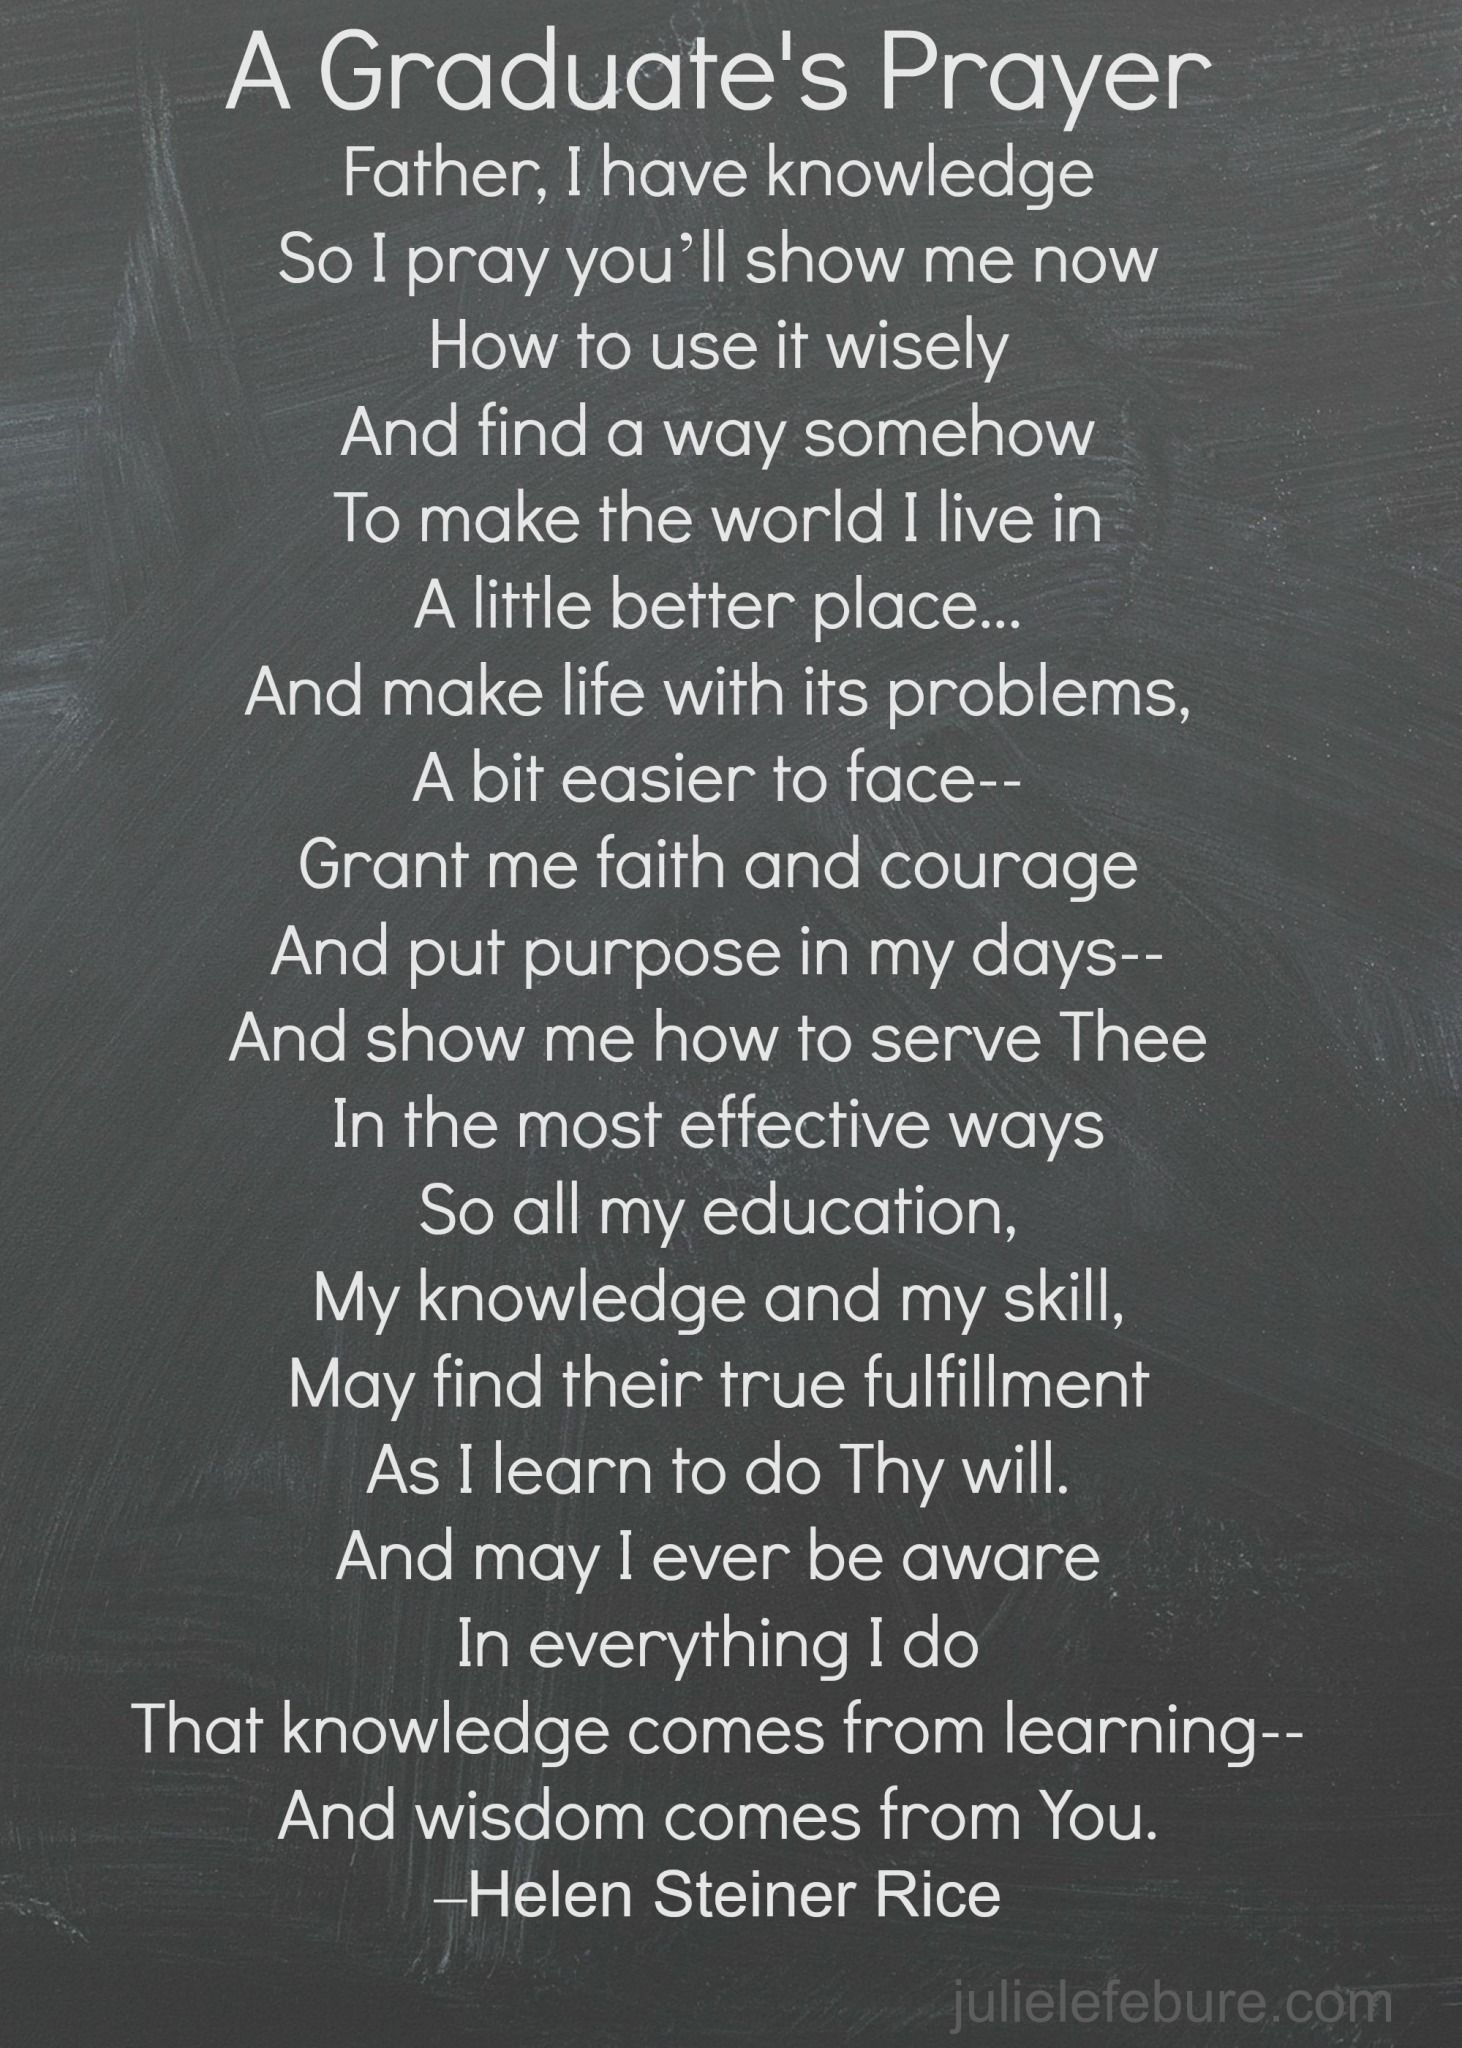 A Graduate's Prayer - Julie Lefebure | Fashion | Pinterest ...